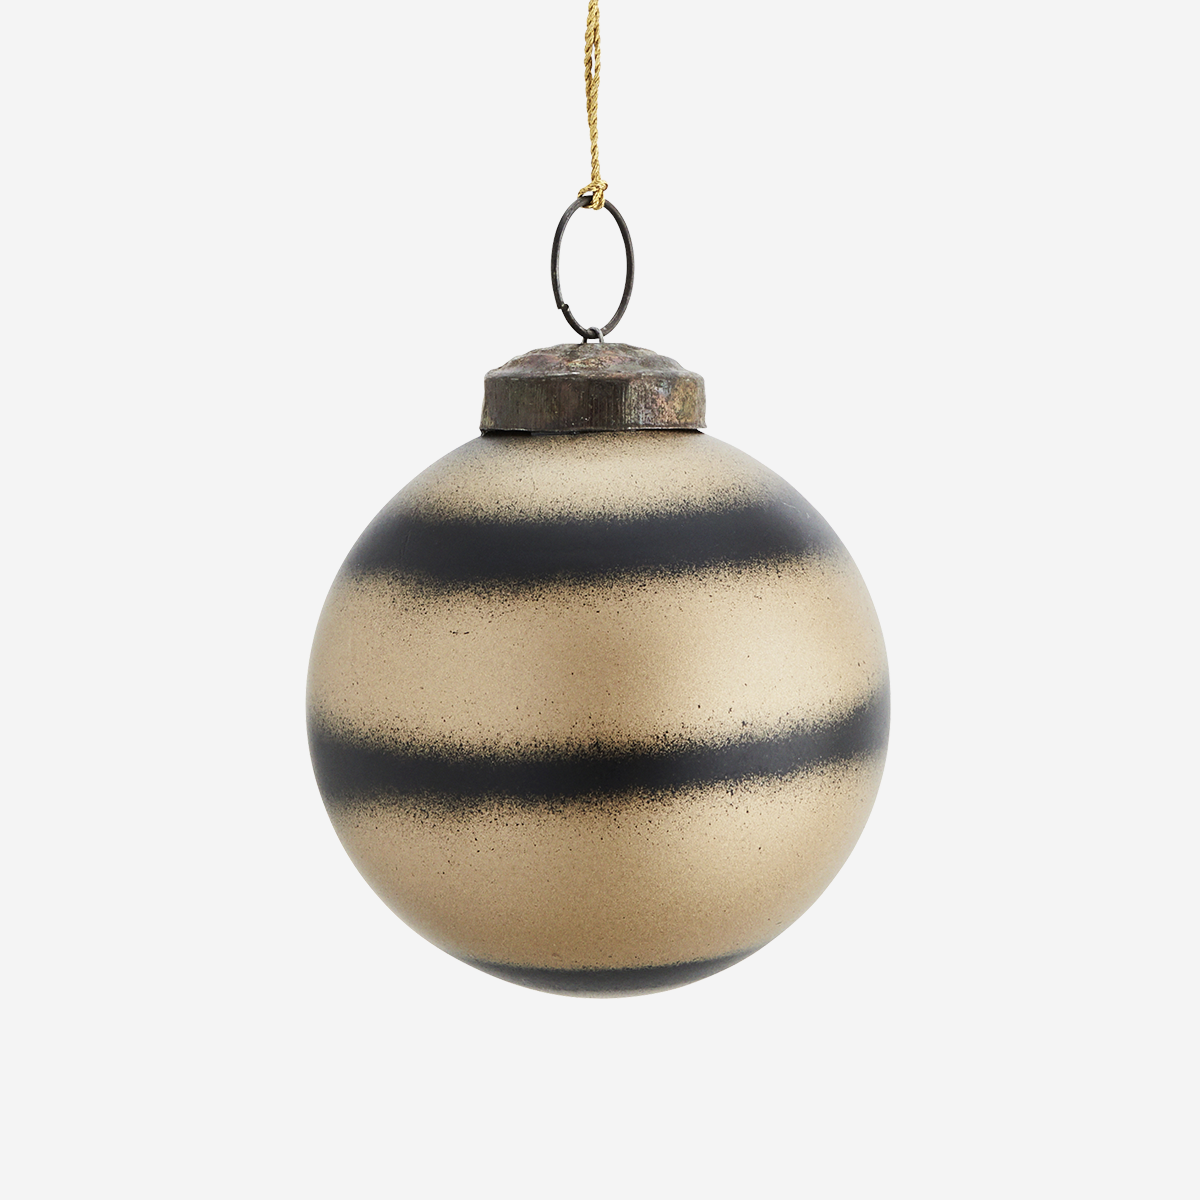 Hanging glass ball w/ stripes